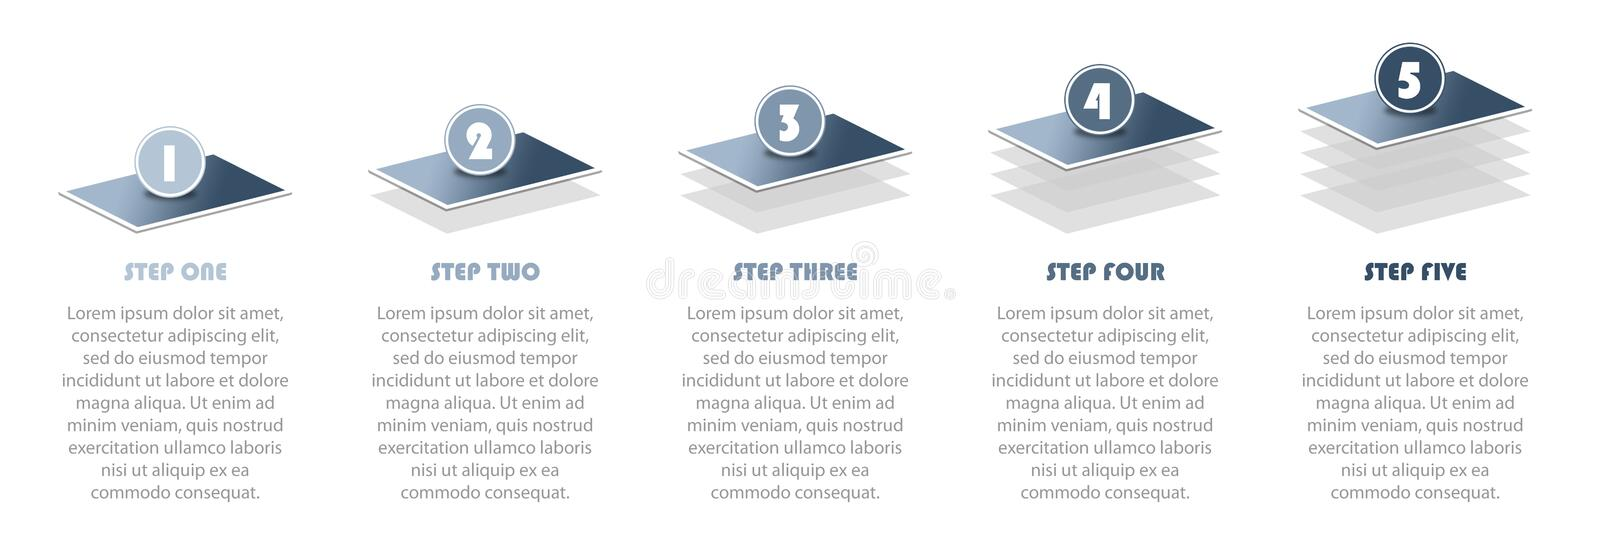 Numbered 5 step infographic illustration showing project progress info graphic vector illustration